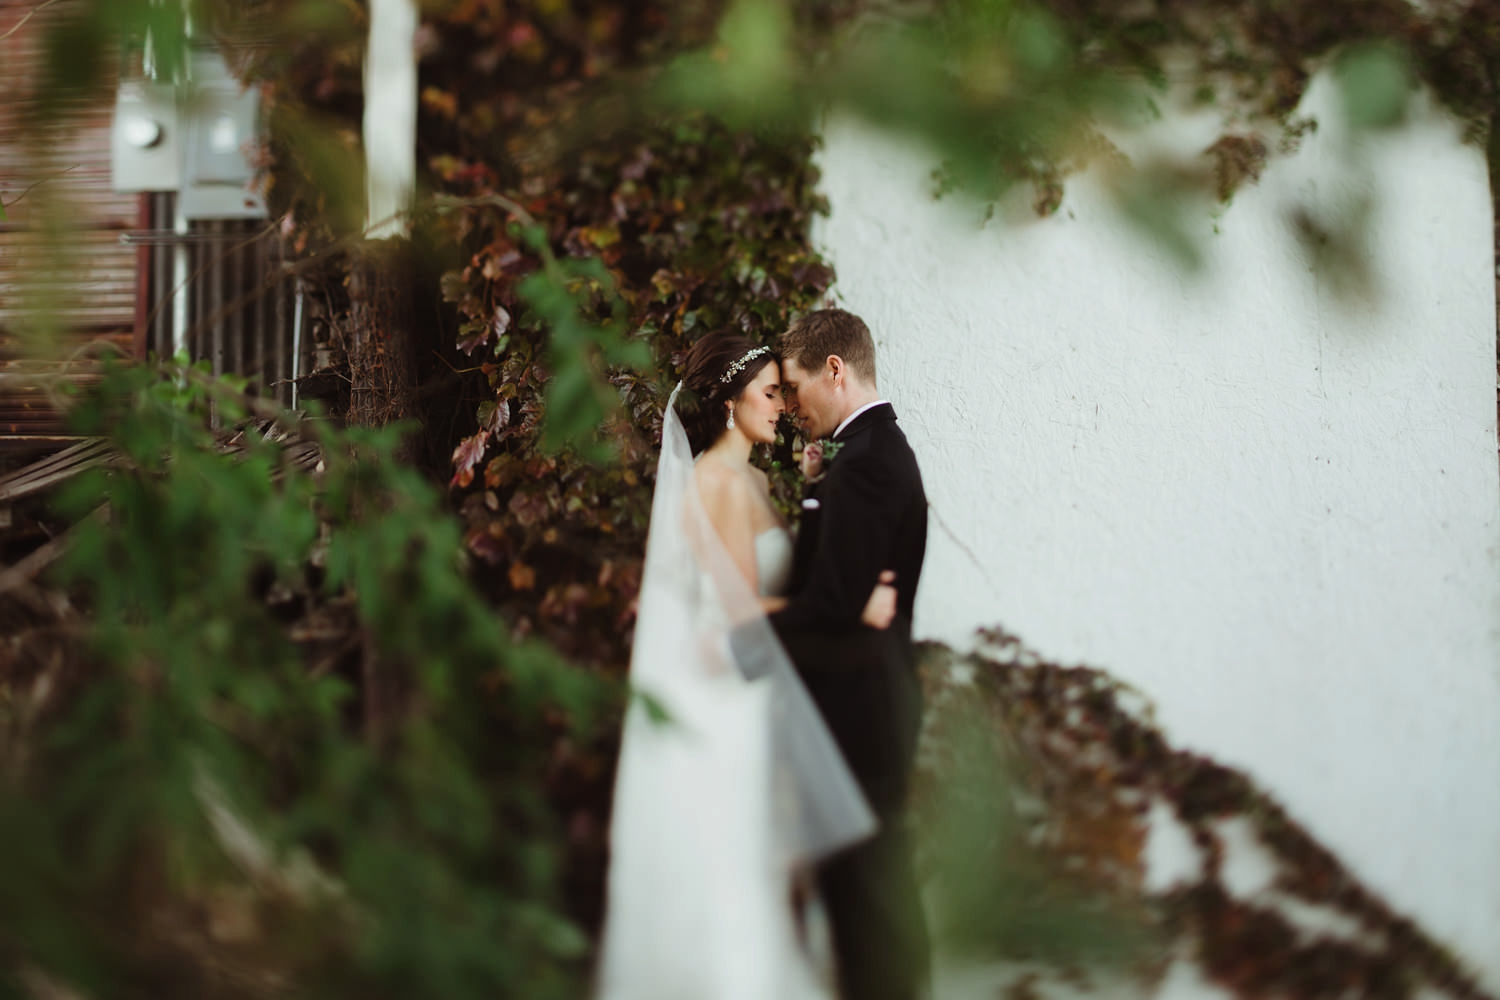 intimate moment for bride and groom after art district wedding